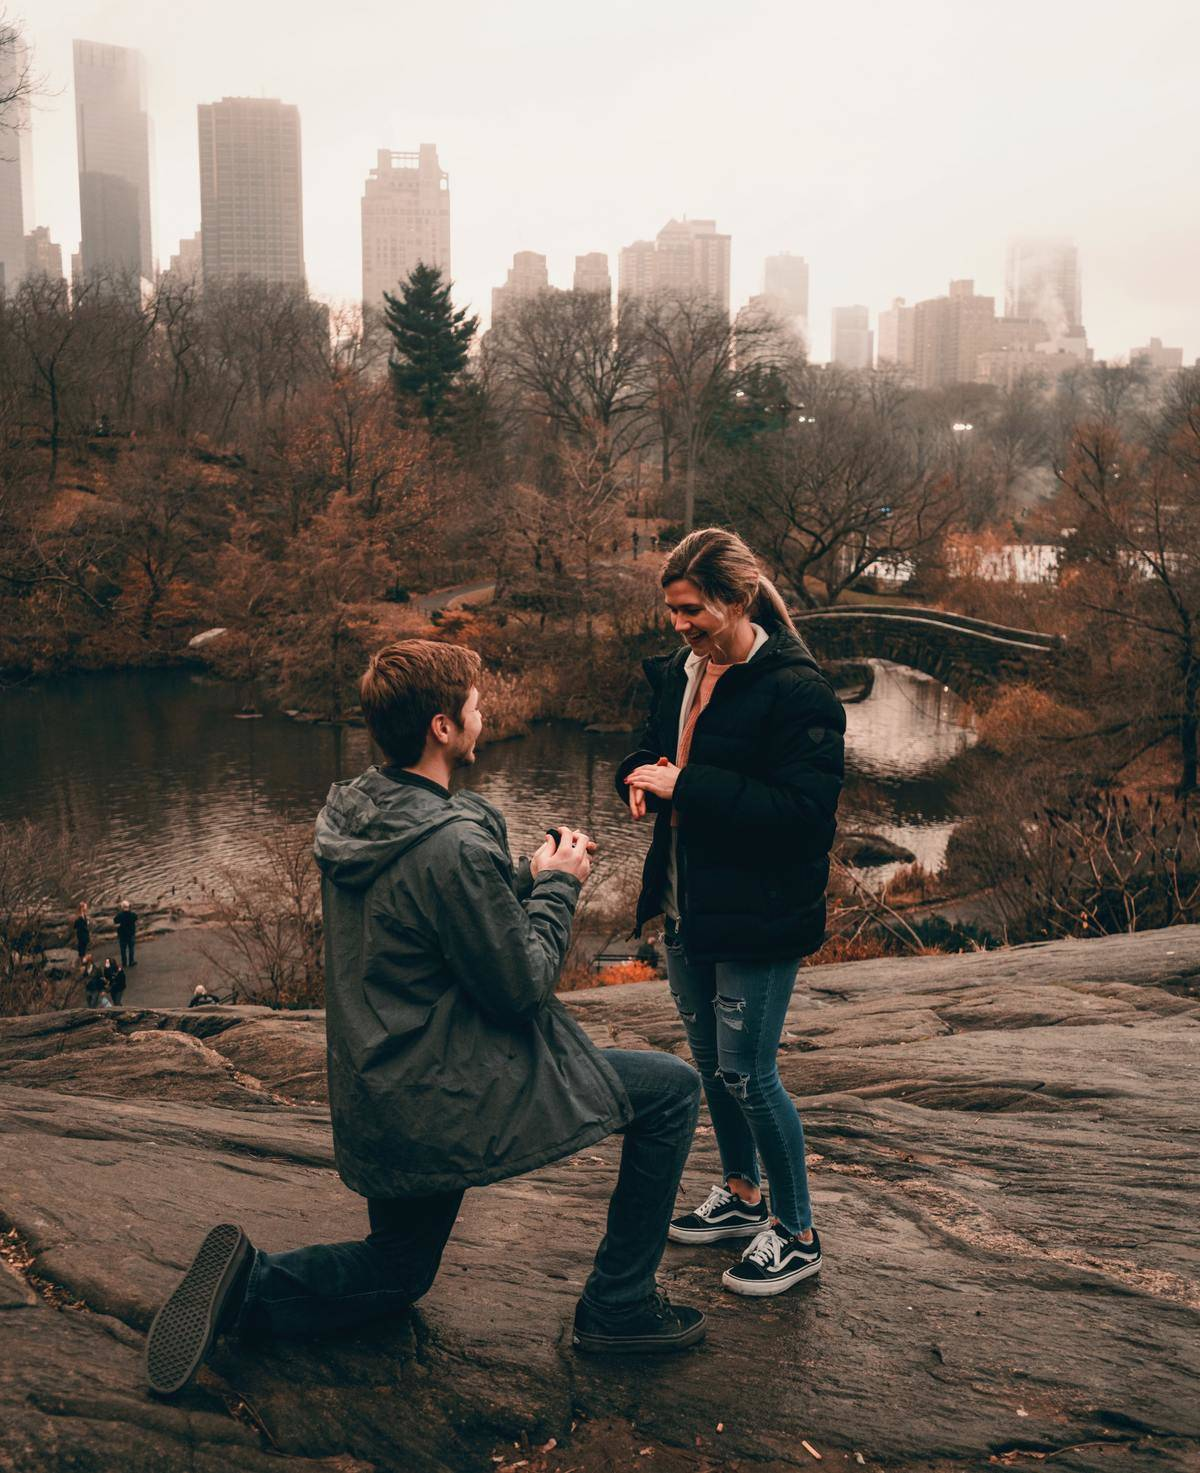 Man proposes to girlfriend in NYC's Central Park on an overcast autumn day.